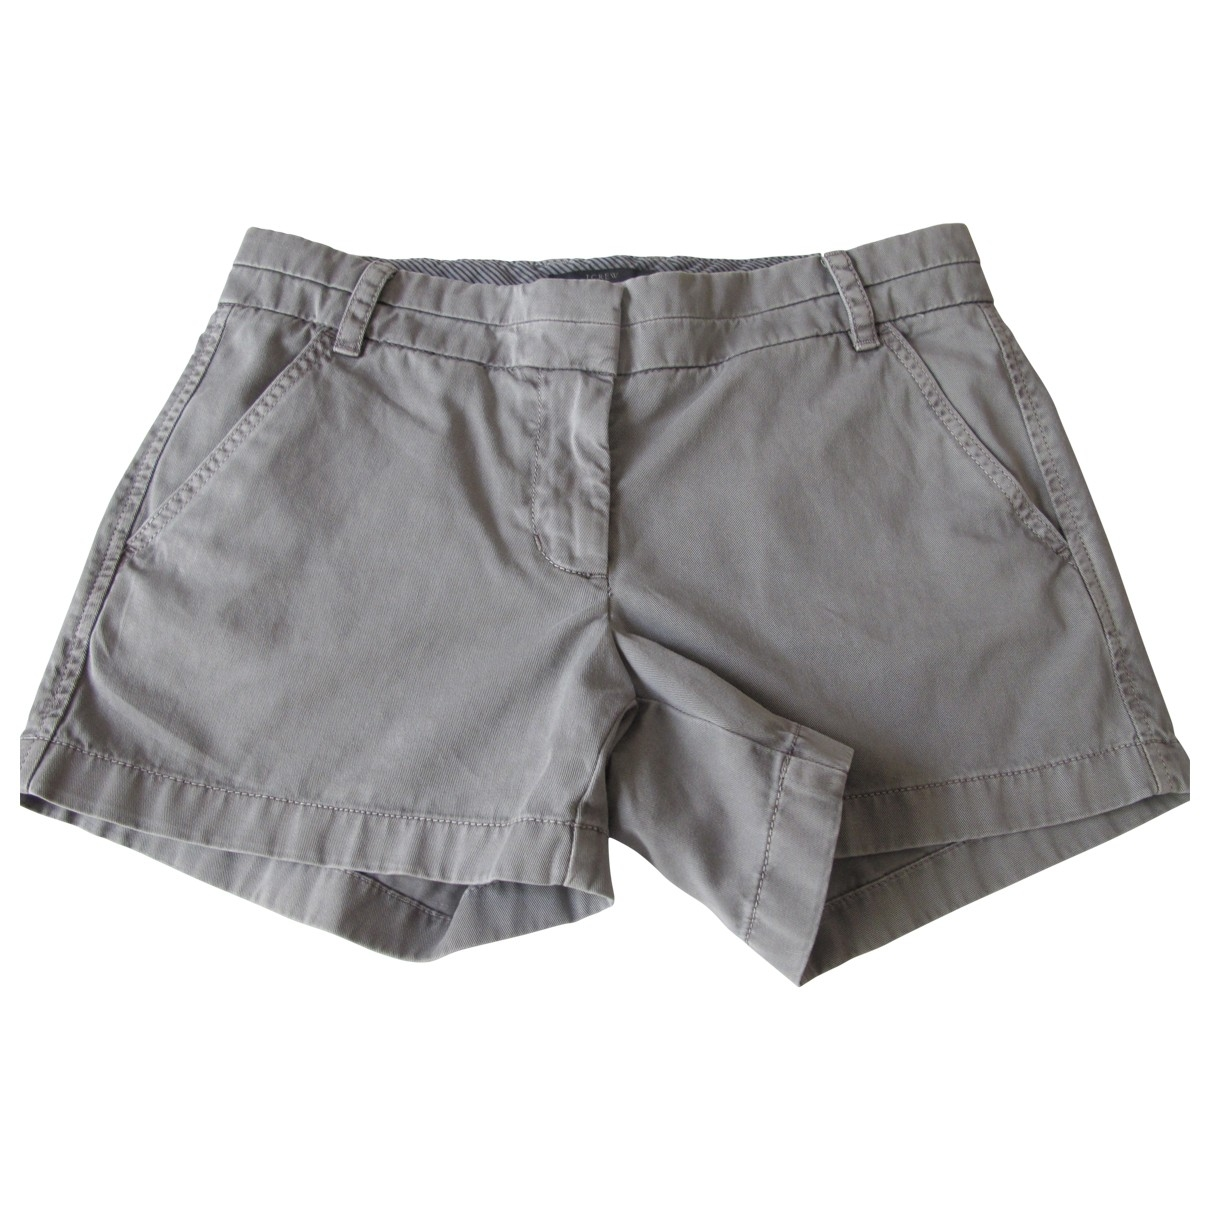 J.crew \N Grey Cotton Shorts for Women 4 US